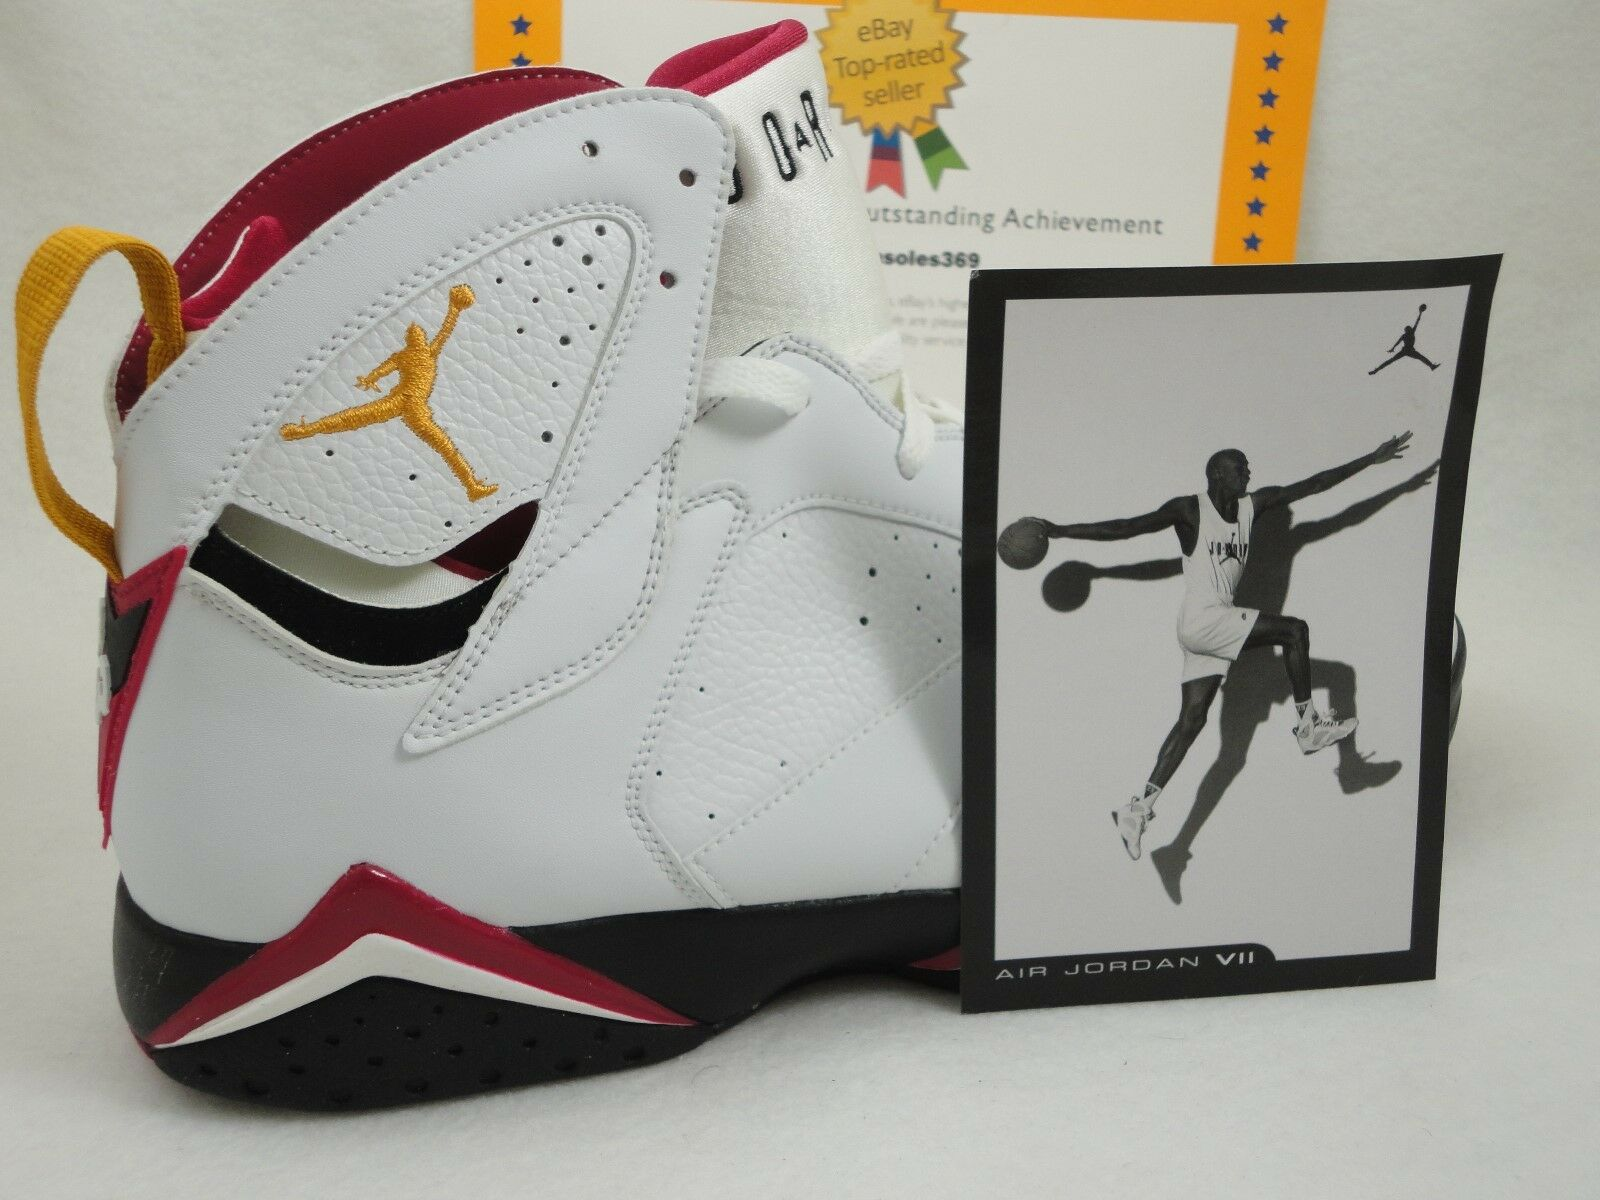 Nike Air Jordan 7 Retro, White / Black / Cardinal Red, 2006, Size 14